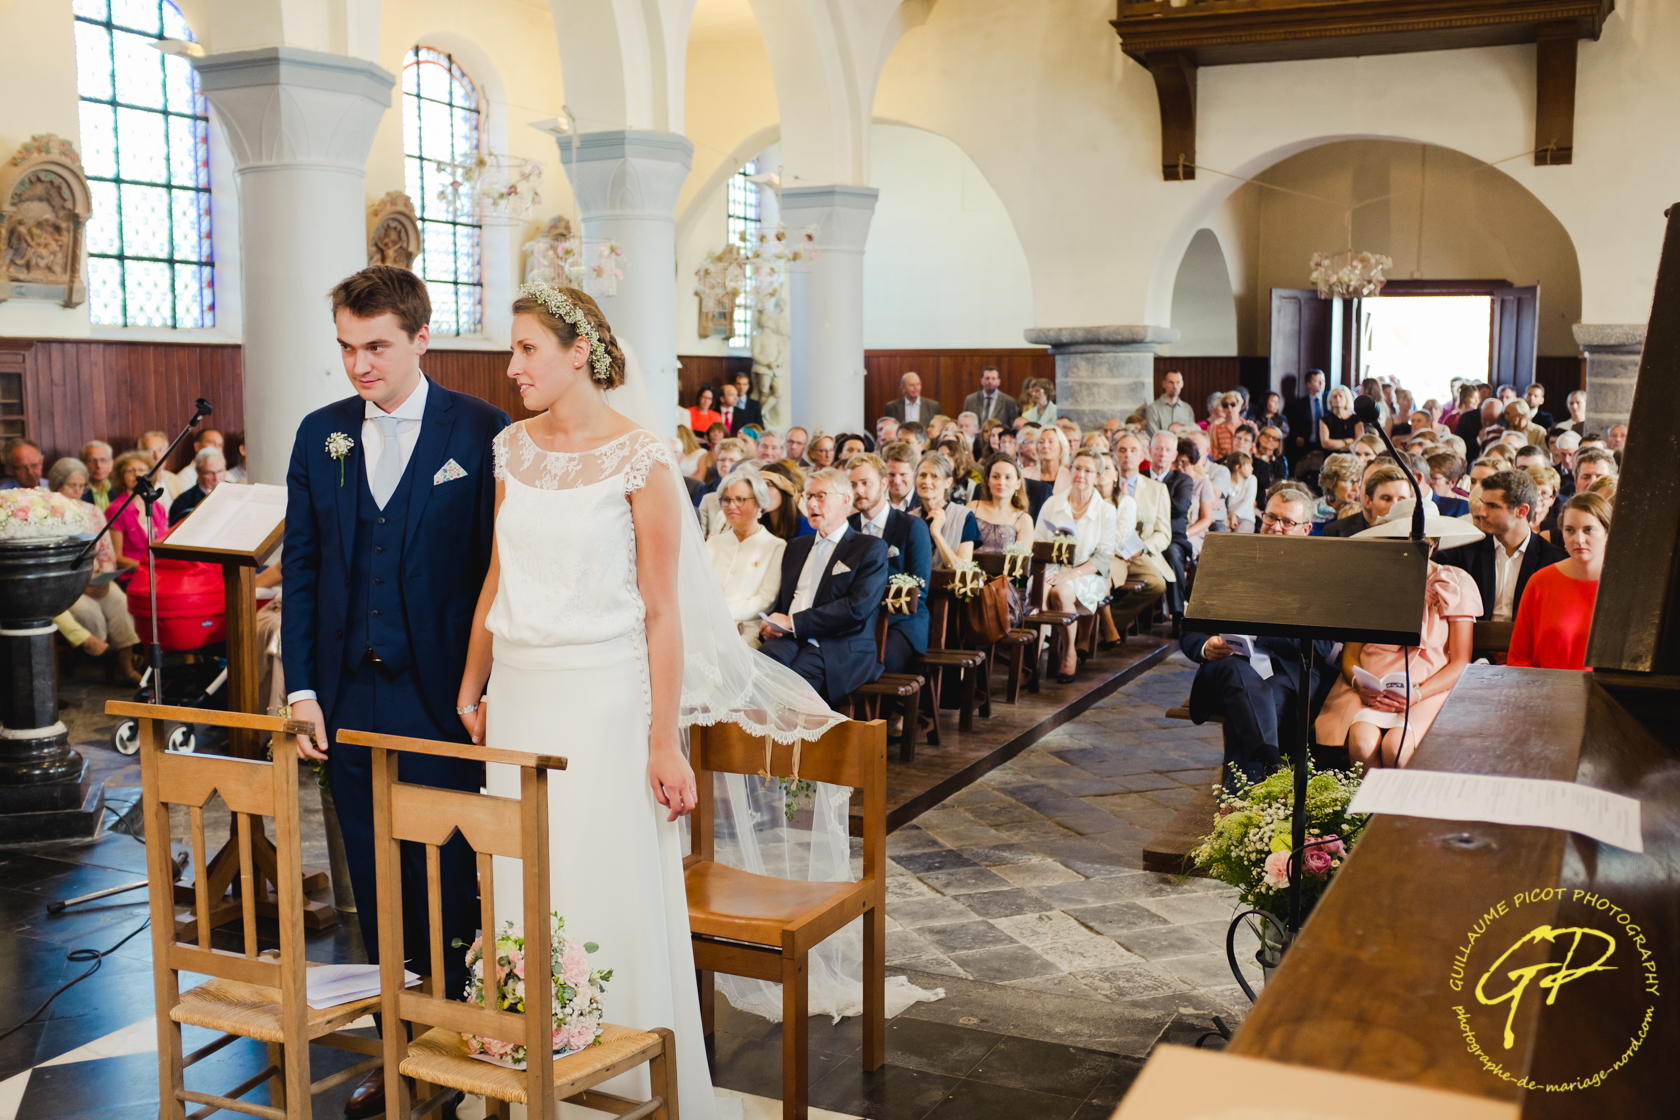 mariage-claire-fontaine-wicres-59-sur-151